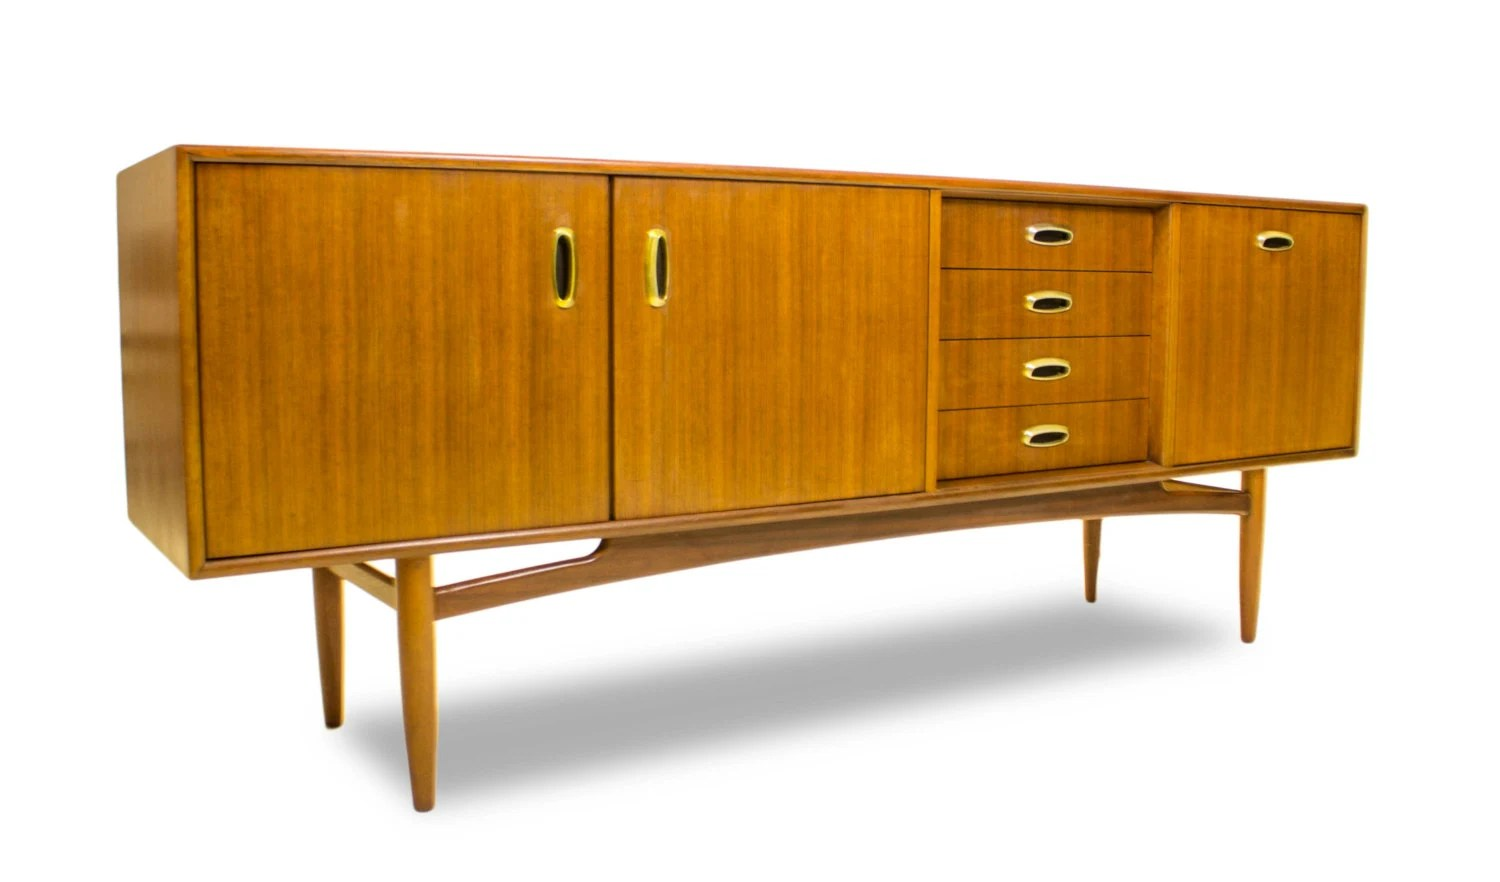 Ib kofod larsen style g plan credenza tv stand media console or drinks cabinet danish style - Media consoles for small spaces plan ...